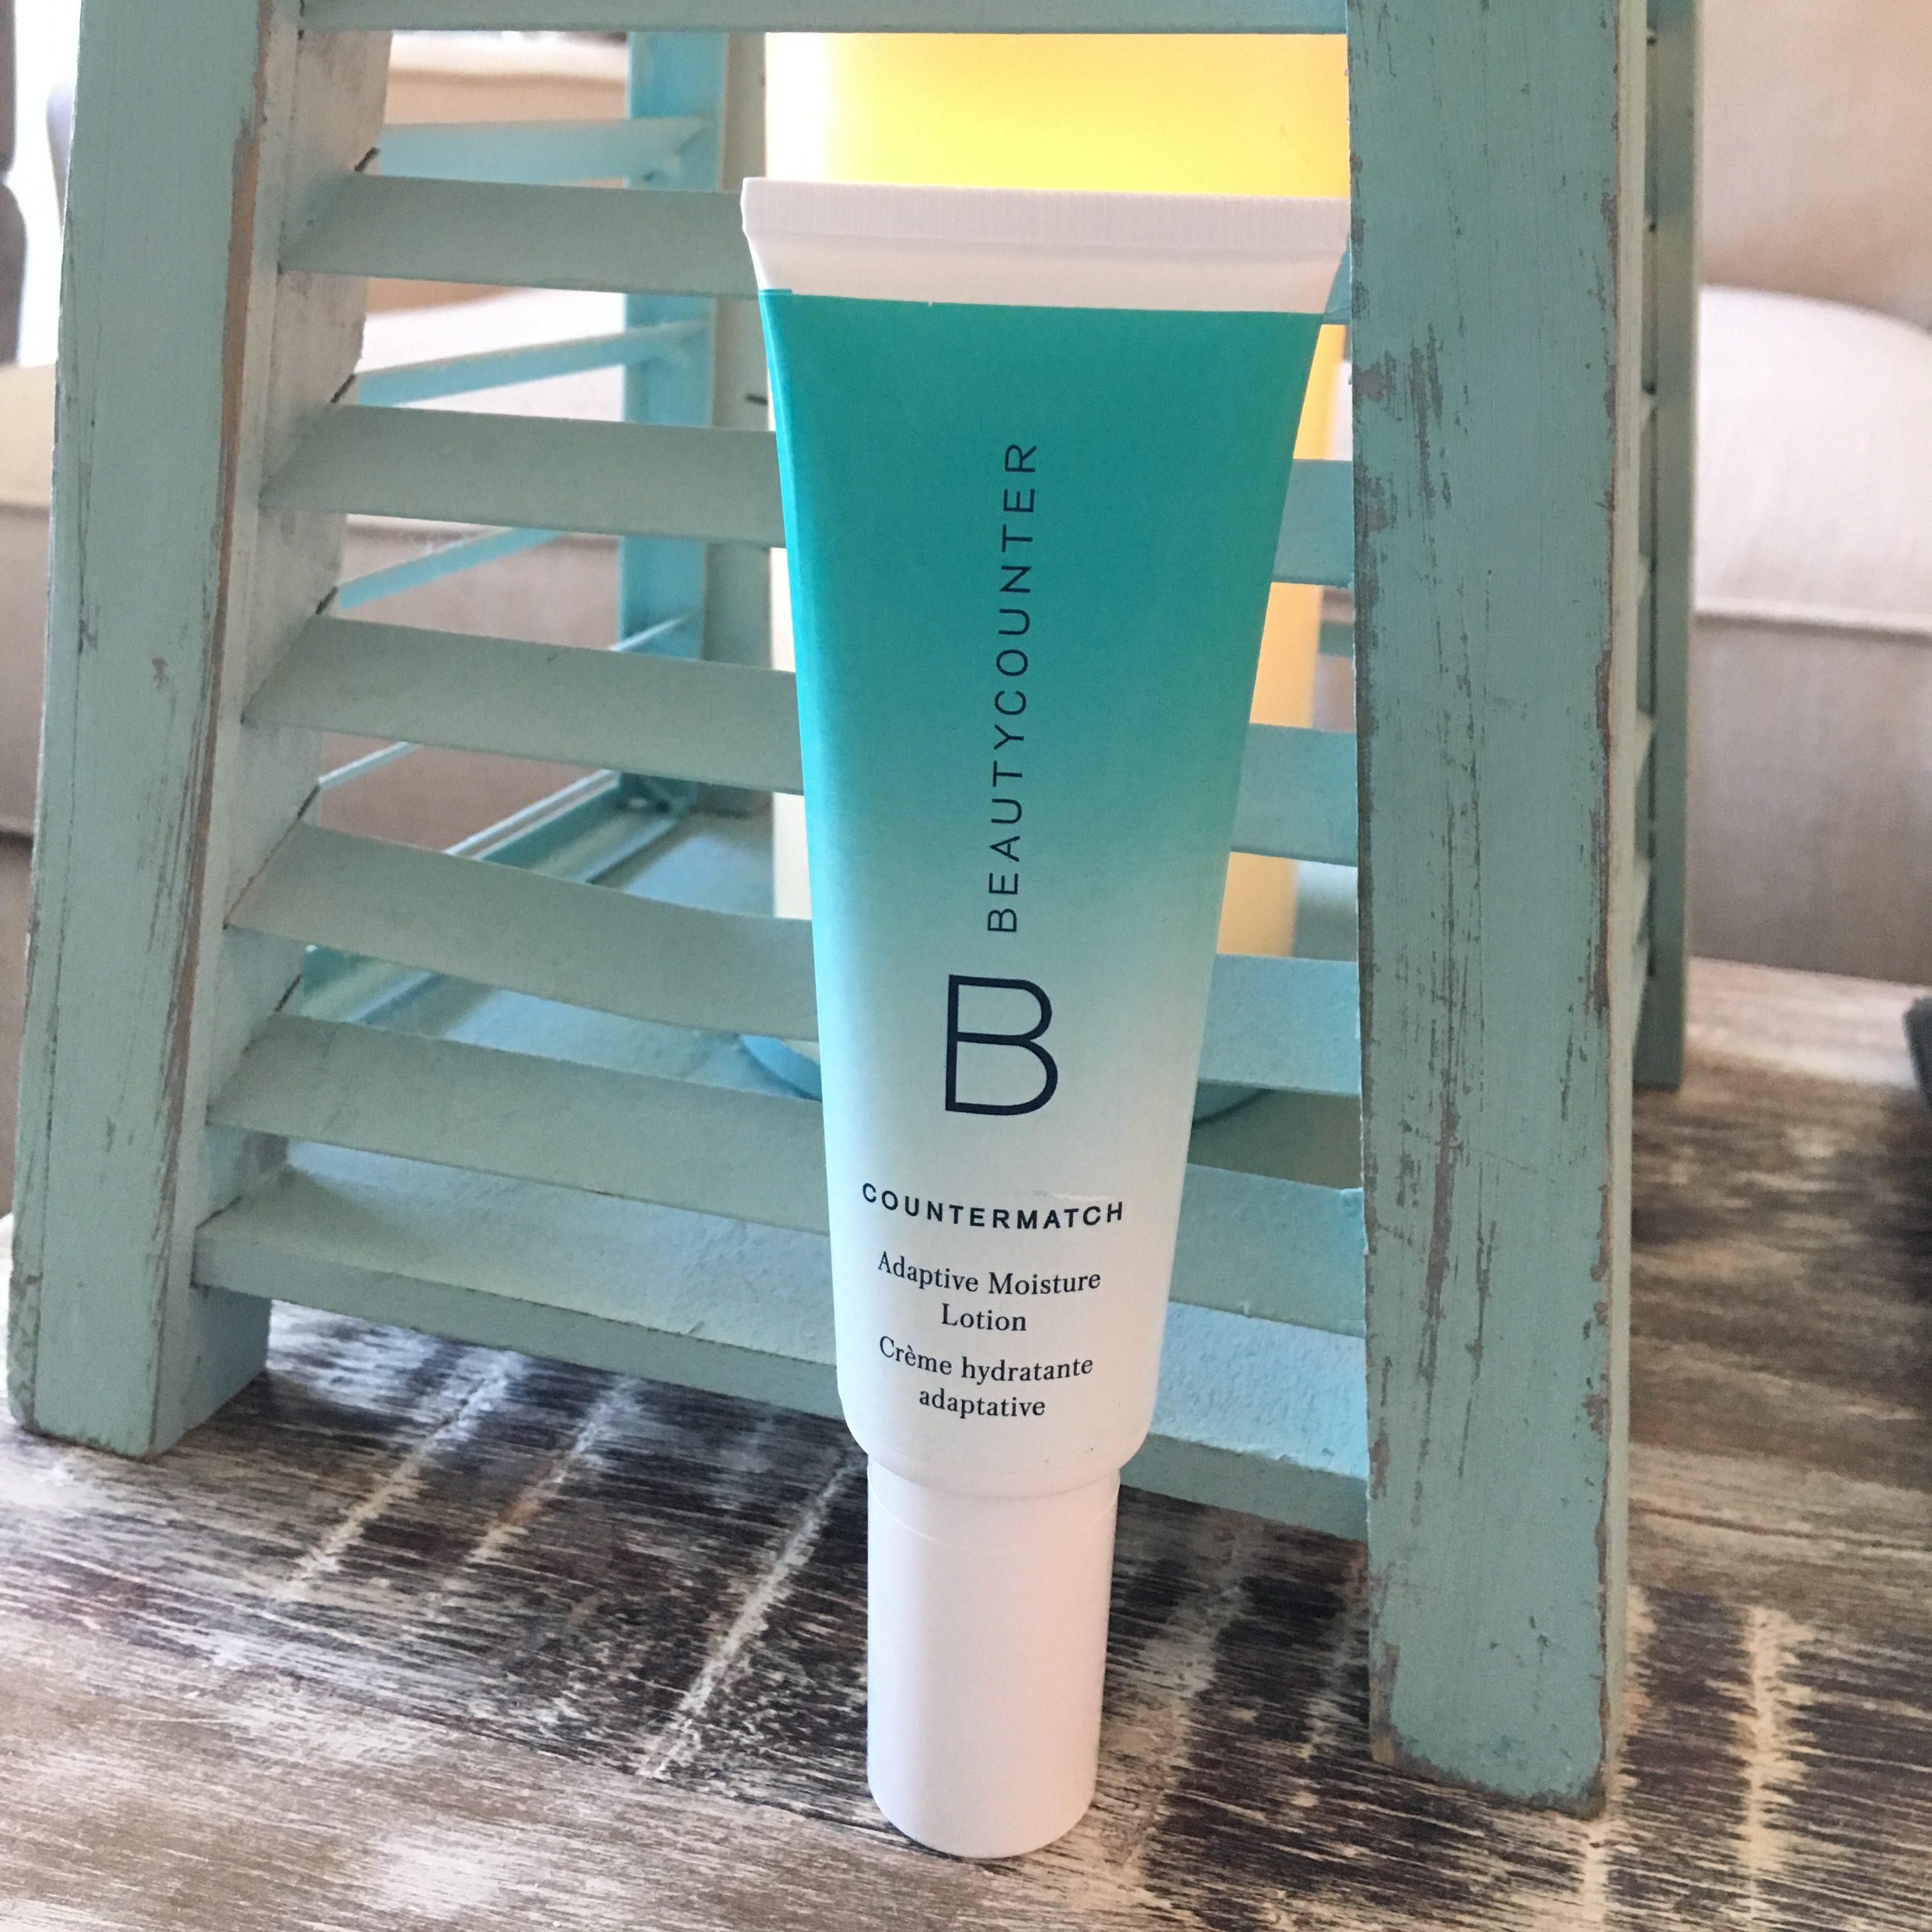 #1 - Beautycounter Countermatch Adaptive Moisture Lotion